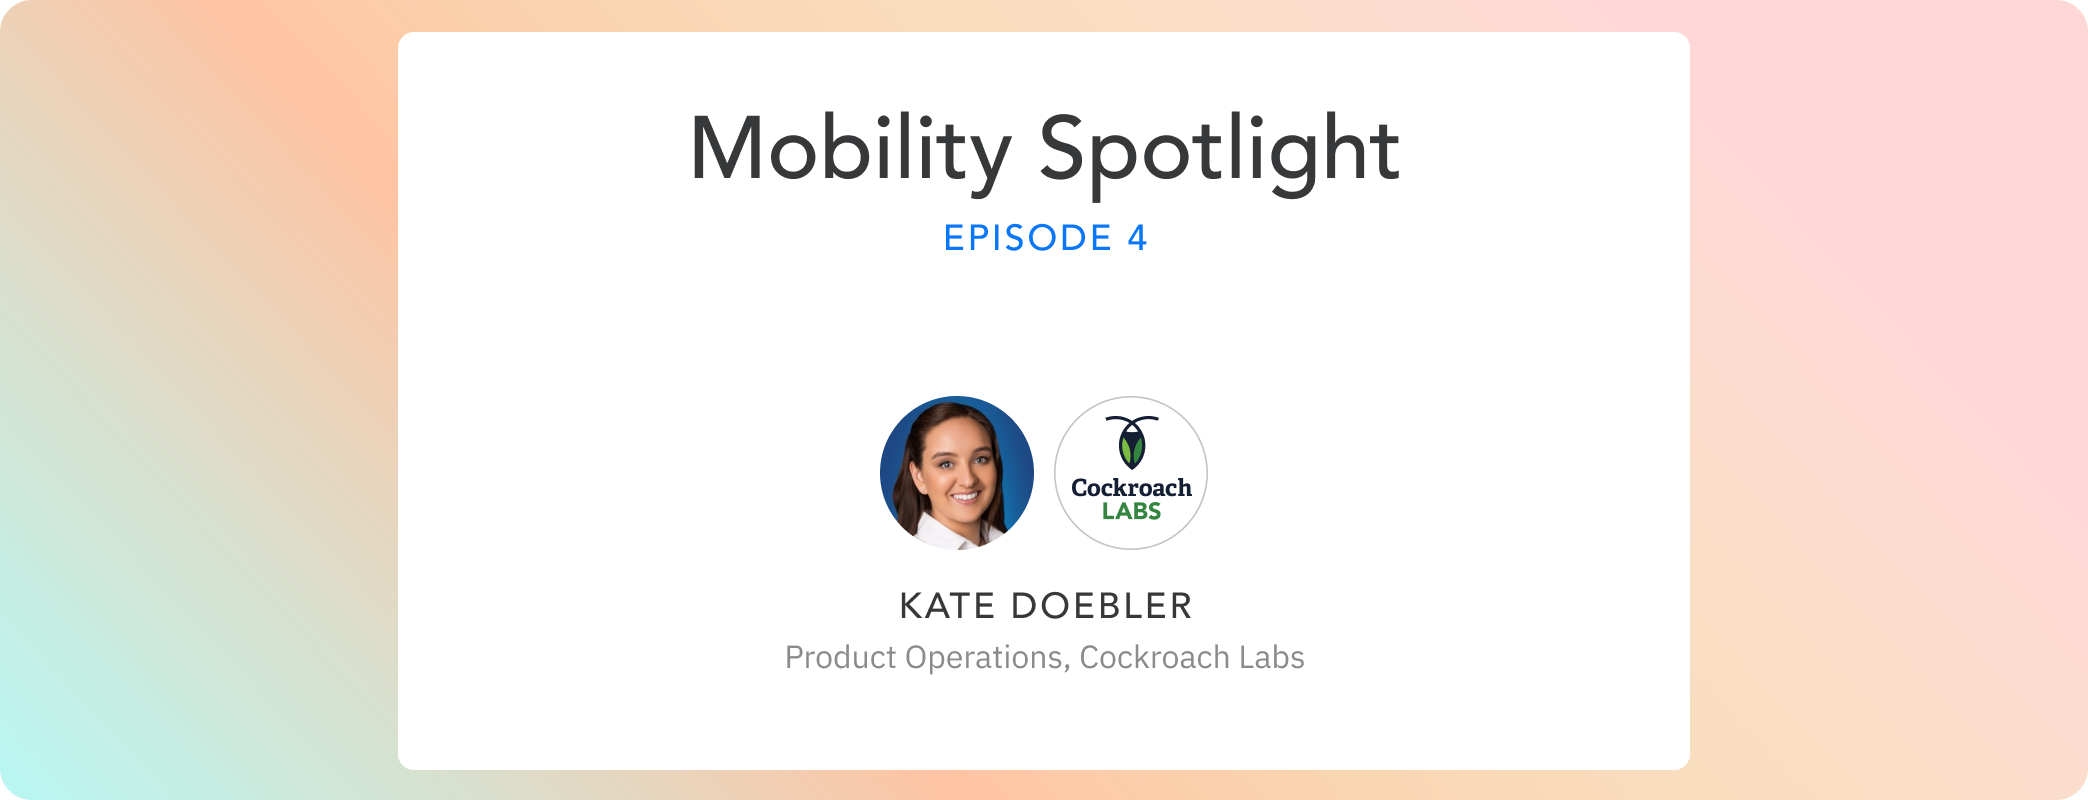 Episode 04: Kate Doebler's journey from Business Analysis to Product Operations